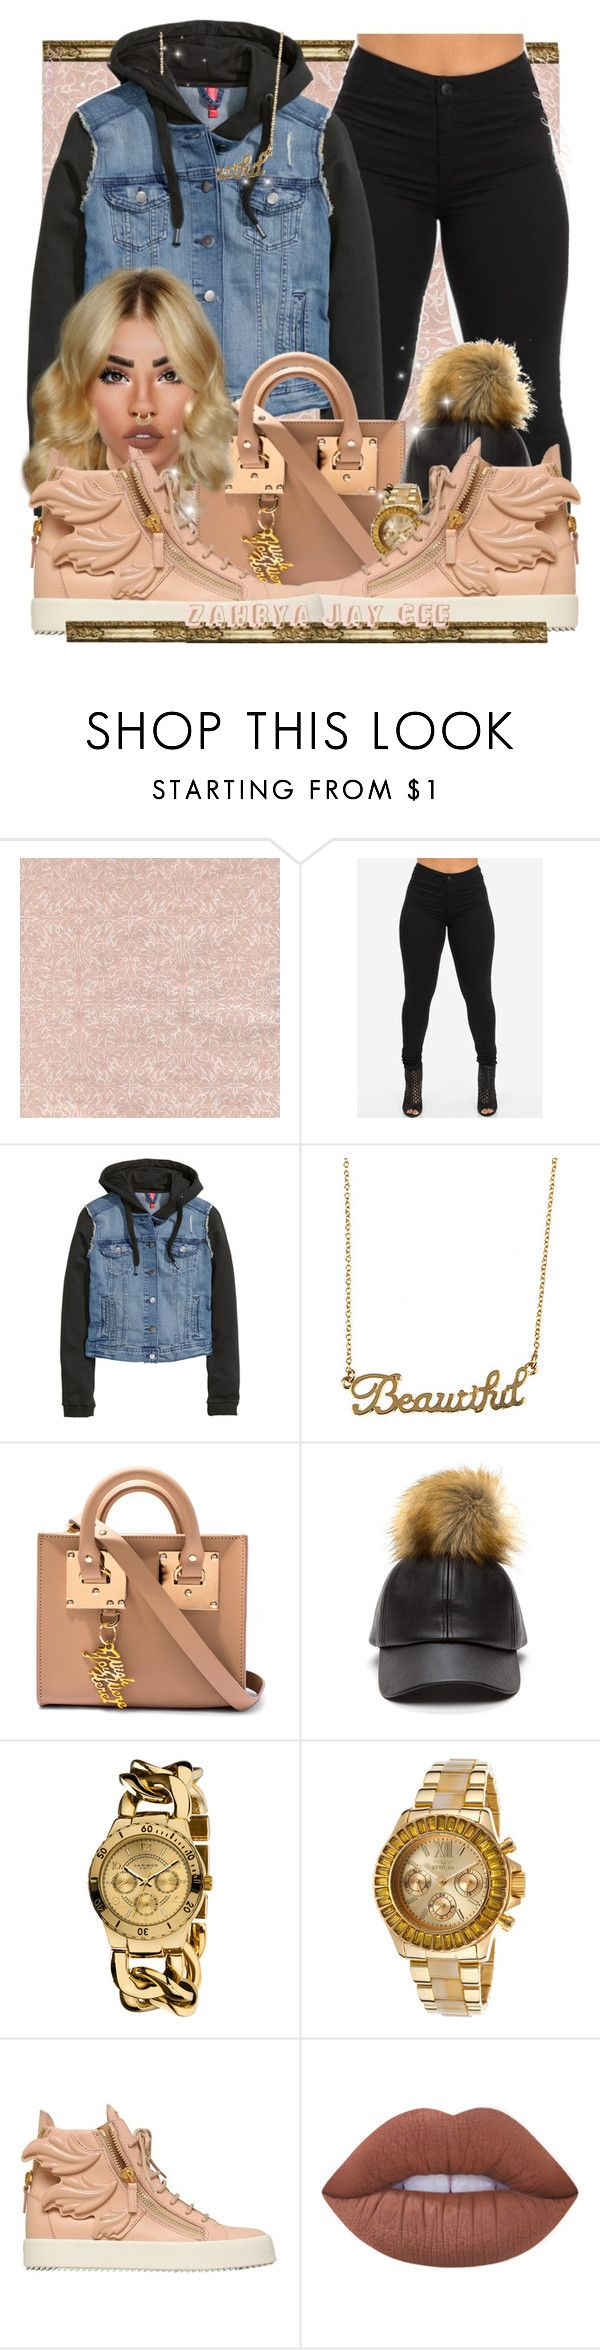 """Through The Wire By: Kanye"" by sphereoflightmovement ❤ liked on Polyvore featuring H&M, Forever 21, Sophie Hulme, Akribos XXIV, Invicta, Giuseppe Zanotti, Lime Crime and Charlotte Russe"